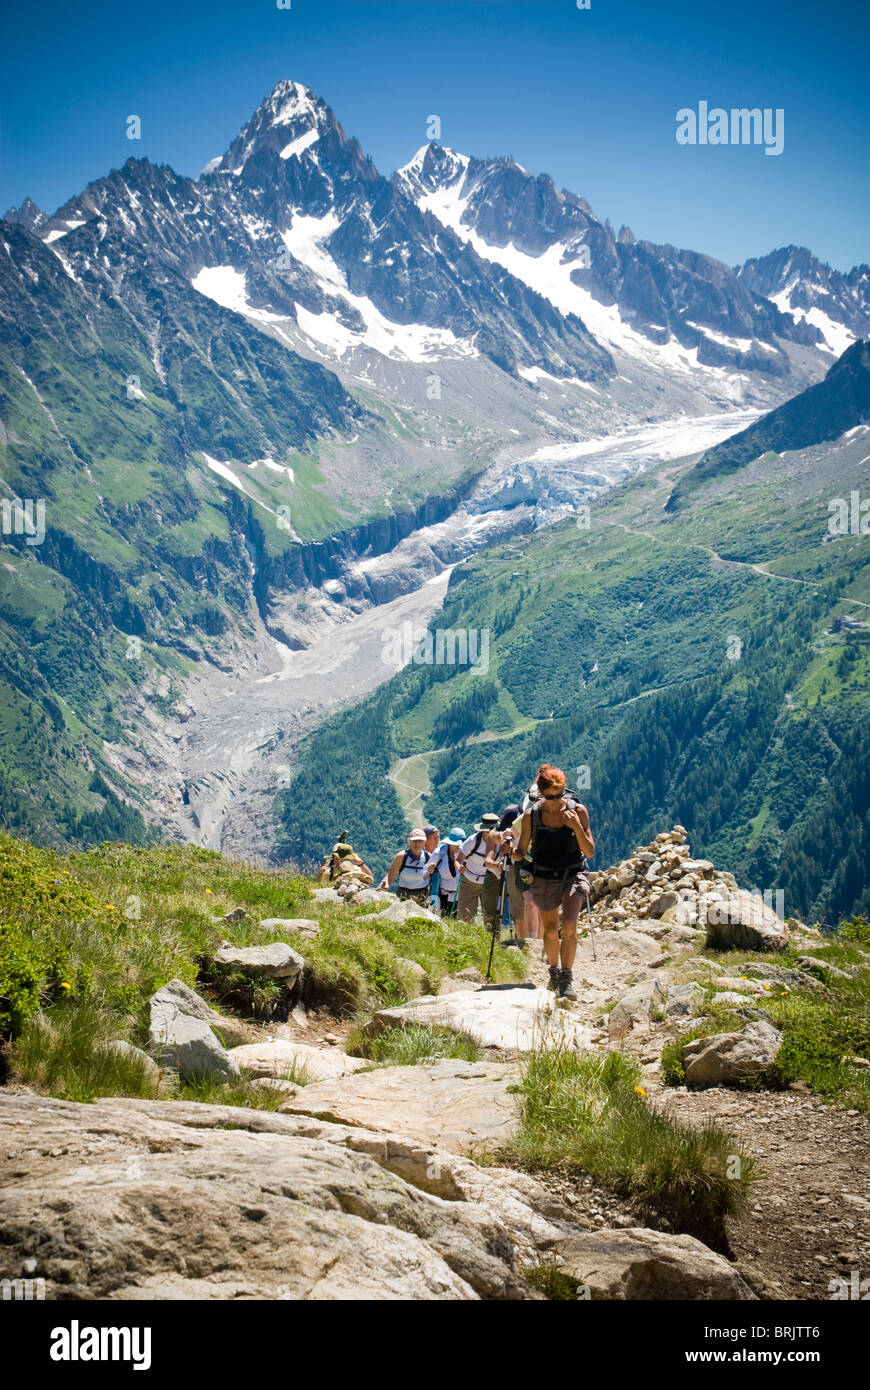 Hikers trek up a hill as the majesty of the Alps towers in the background. - Stock Image